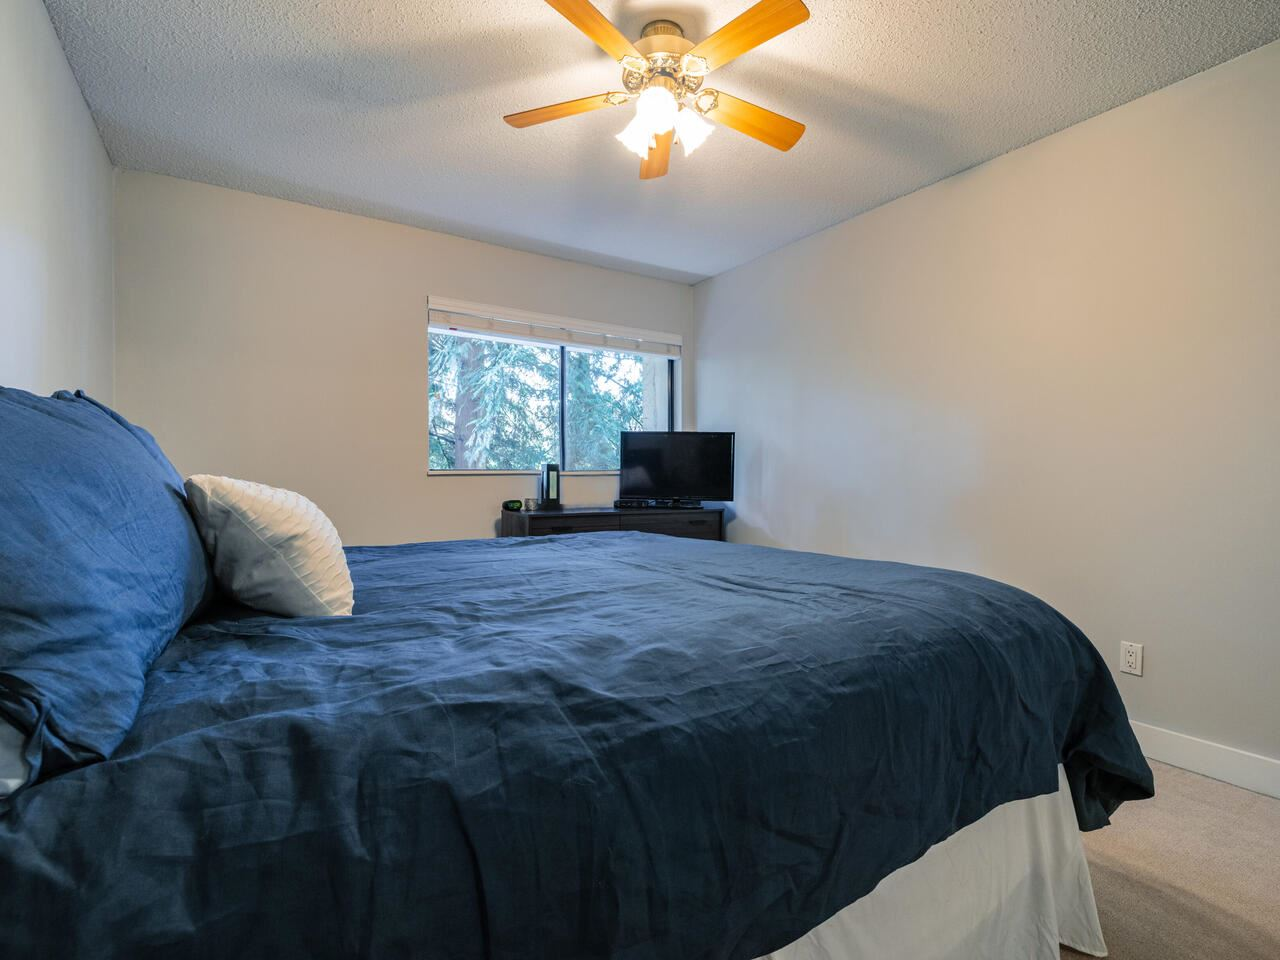 Listing Image of 33 1825 PURCELL WAY